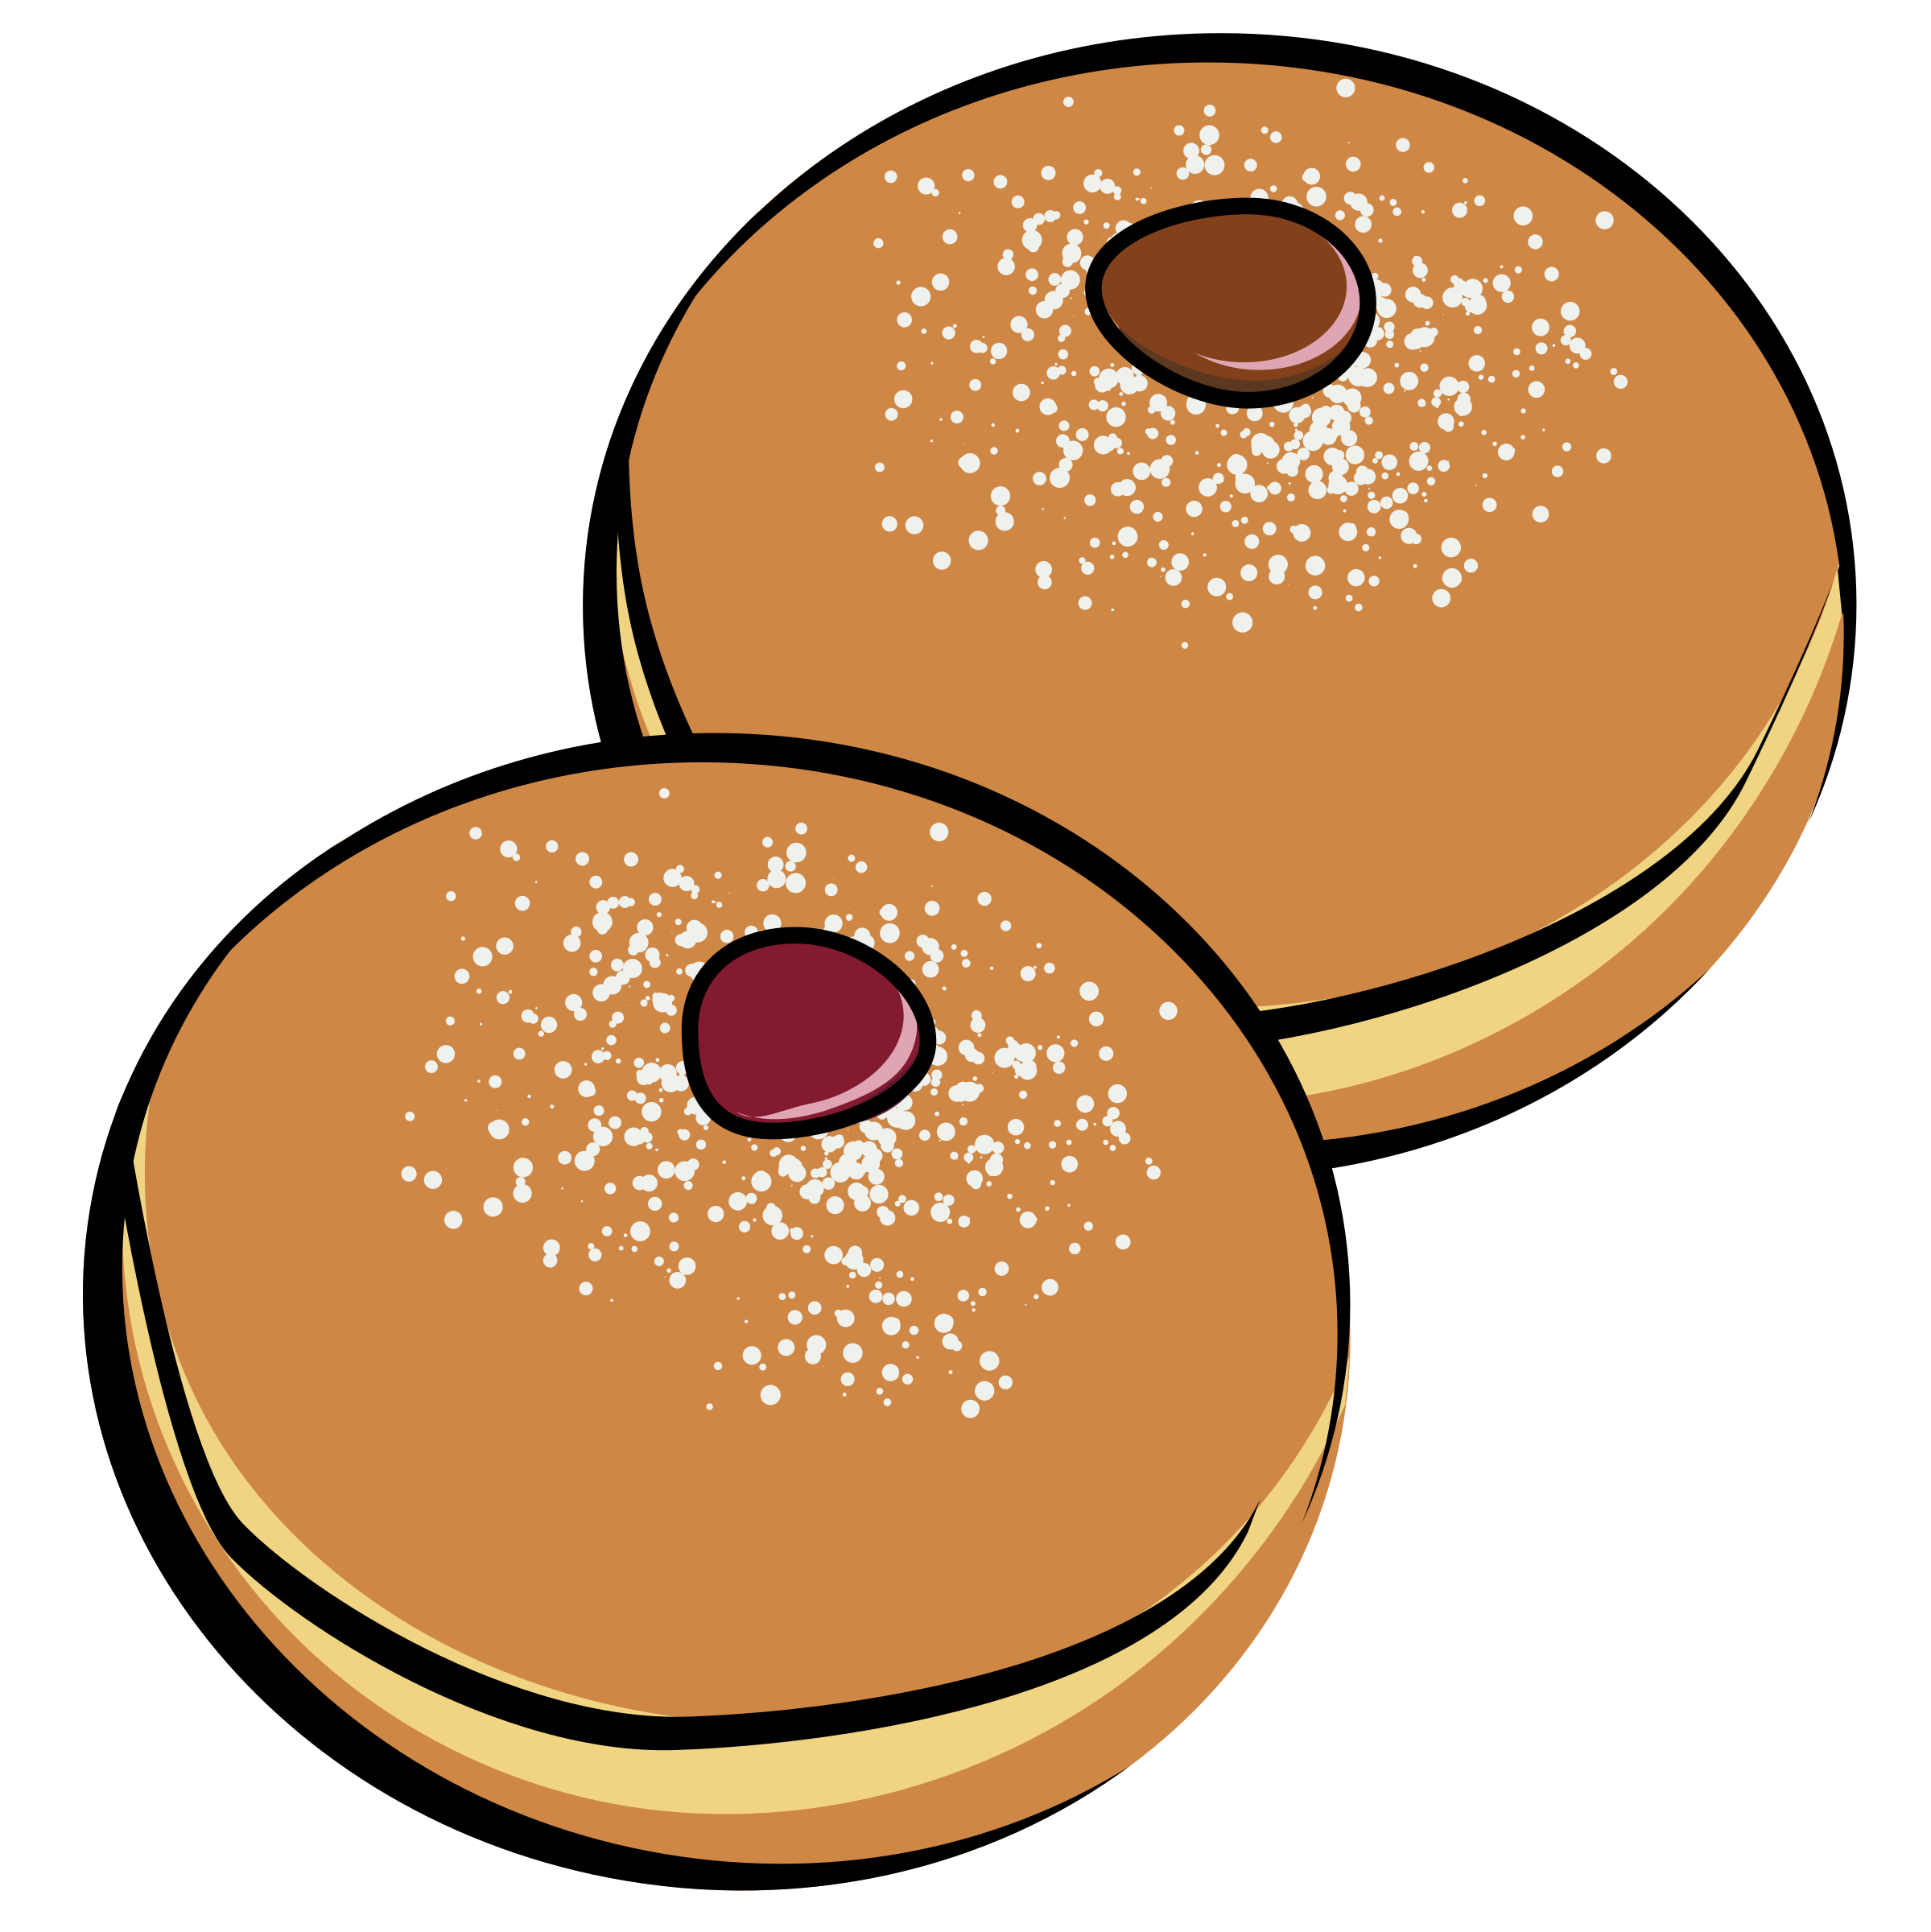 donuts images youtube. Donut clipart animated